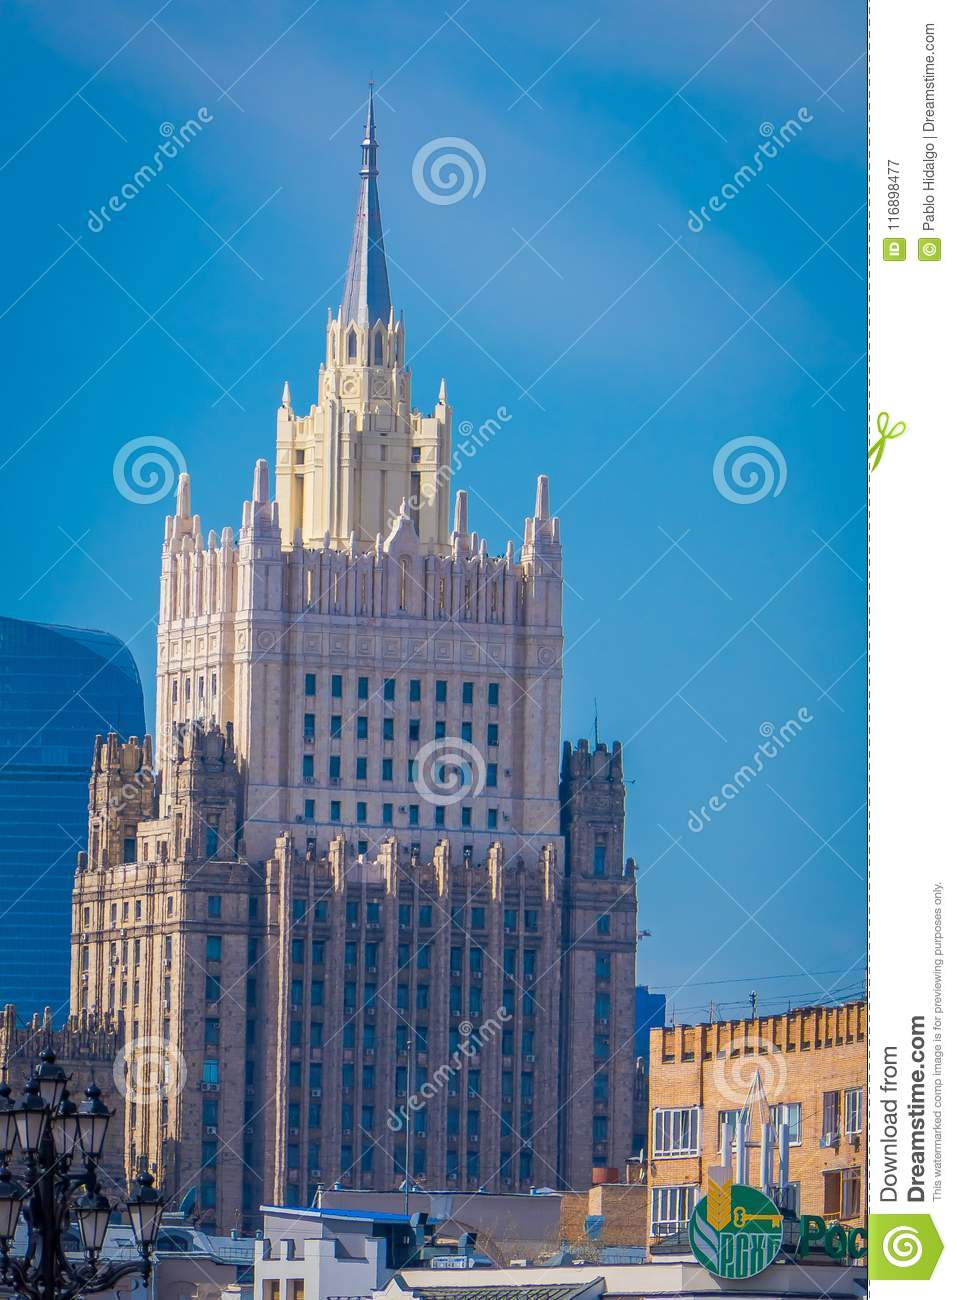 MOSCOW, RUSSIA- APRIL, 29, 2018: Outdoor view of Ministry of Foreign Affairs building, Smolenskaya Square